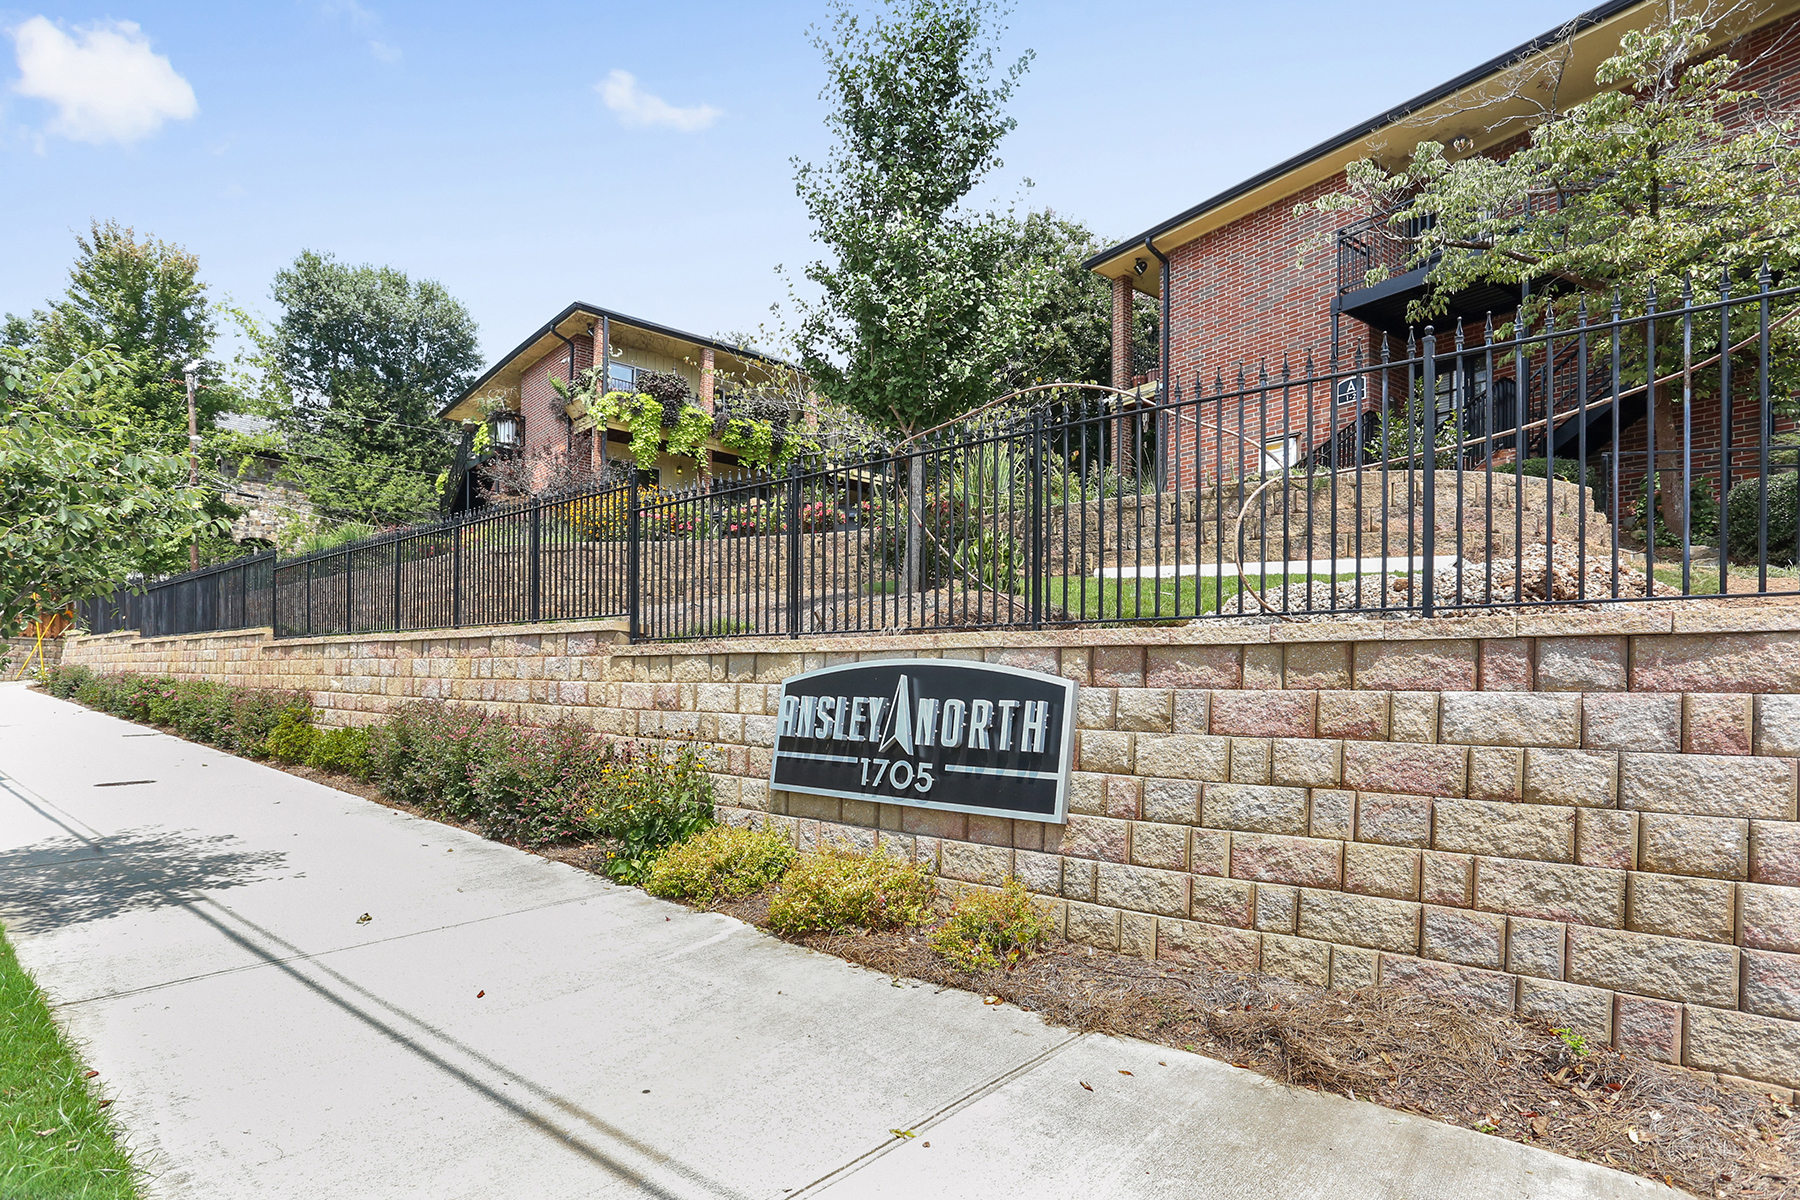 Condominium for Sale at Top Floor, Two bedroom. One bathroom Co-Op Unit in Morngside/Ansley Park Area 1705 Monroe Dr A10 Atlanta, Georgia 30324 United States